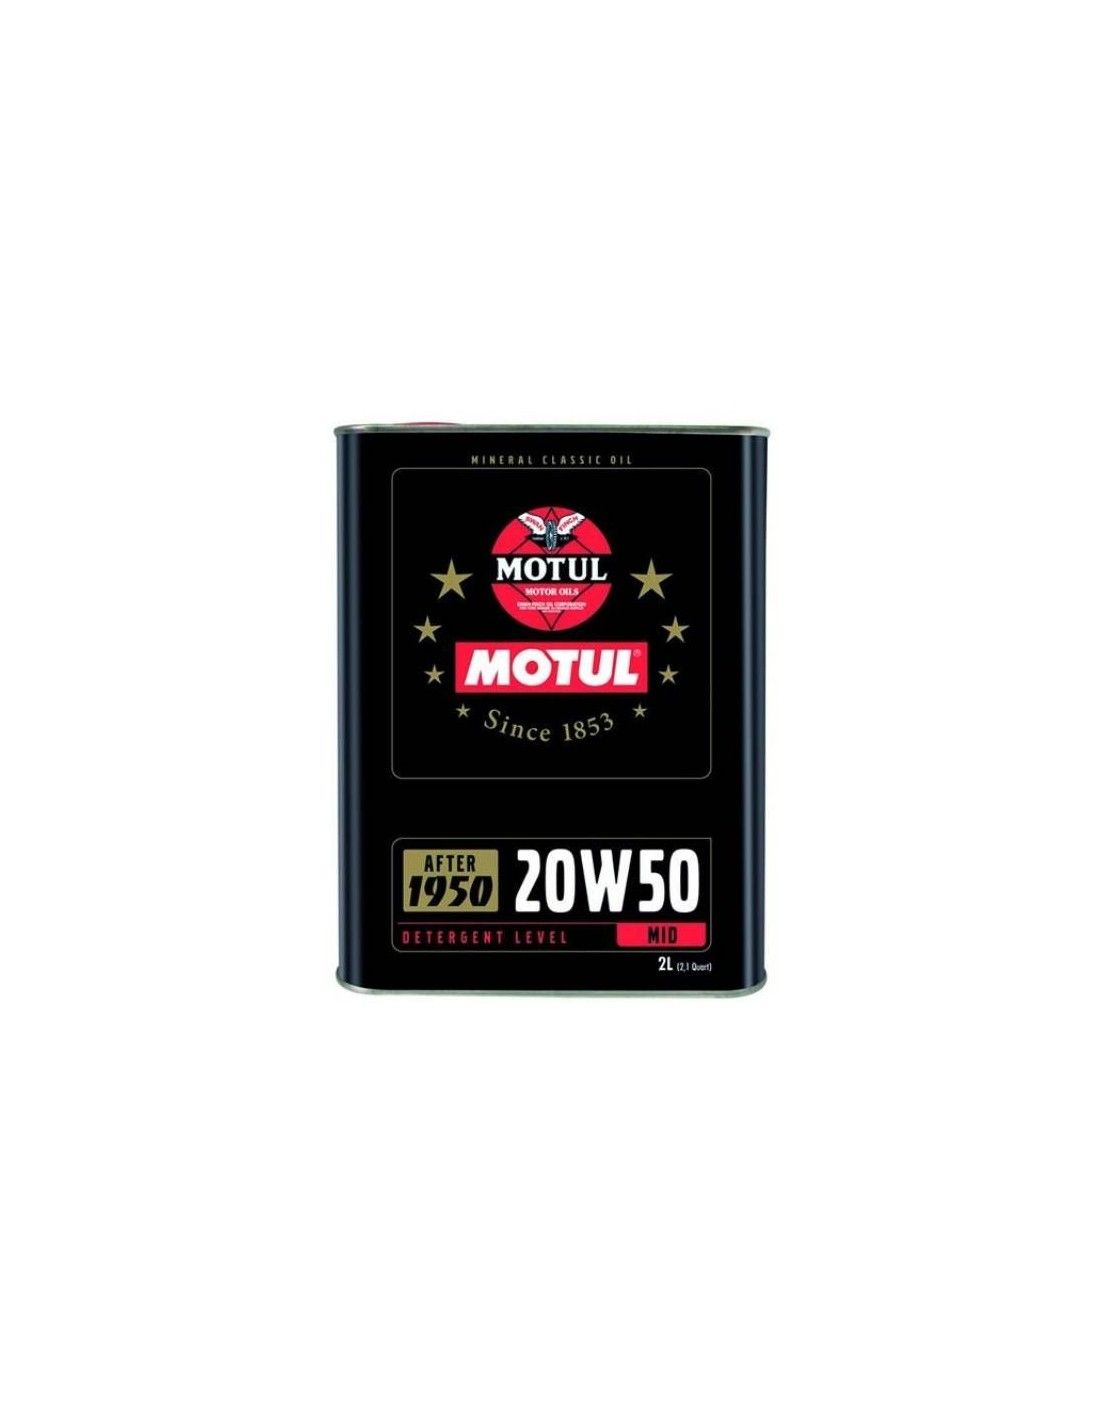 huile moteur multigrade motul classic oil 20w50 bidon de 2 litres. Black Bedroom Furniture Sets. Home Design Ideas